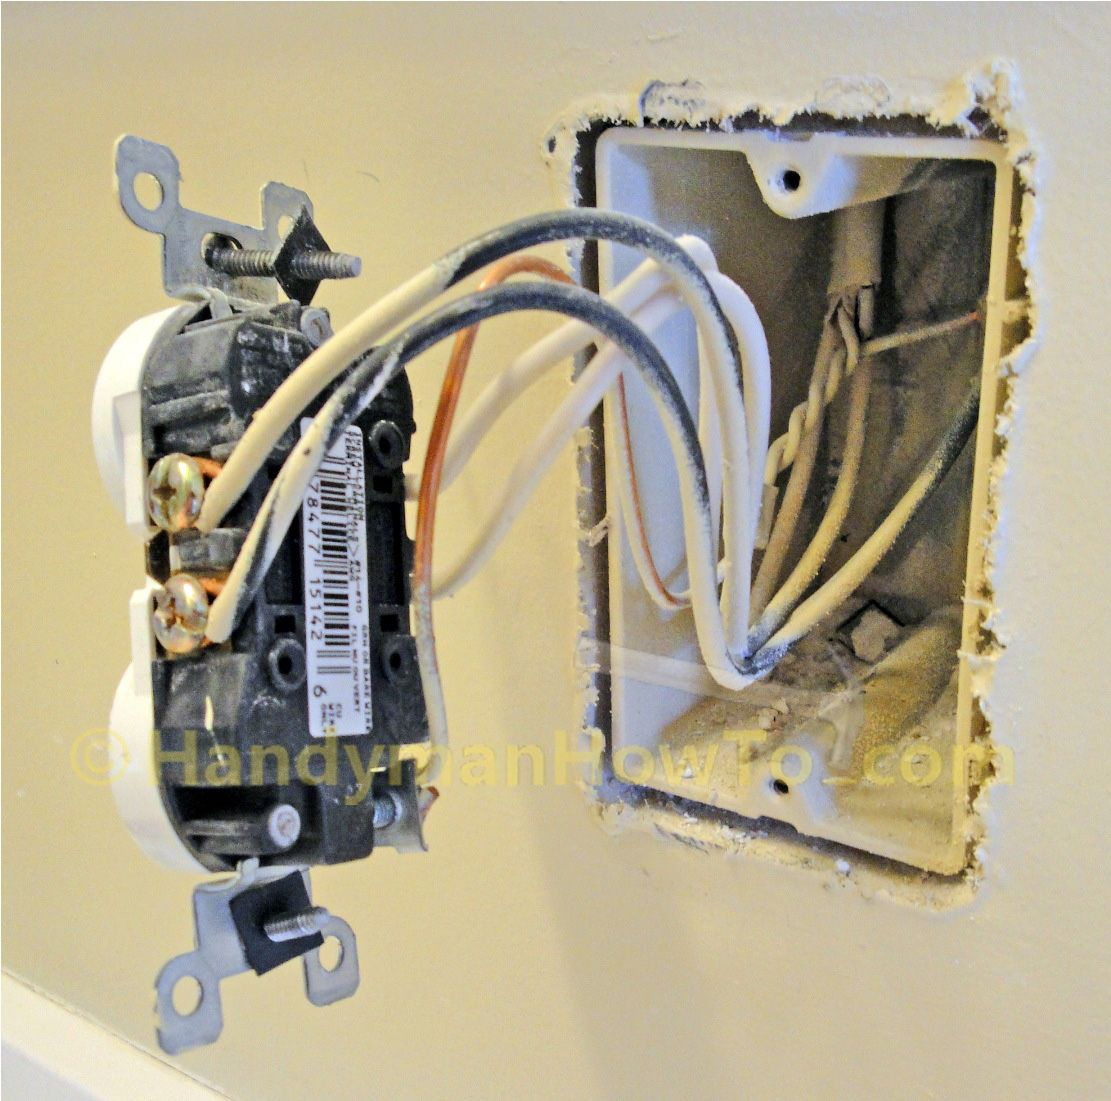 small resolution of how to replace a worn out electrical outlet photo tutorial with parallel and series wiring diagrams